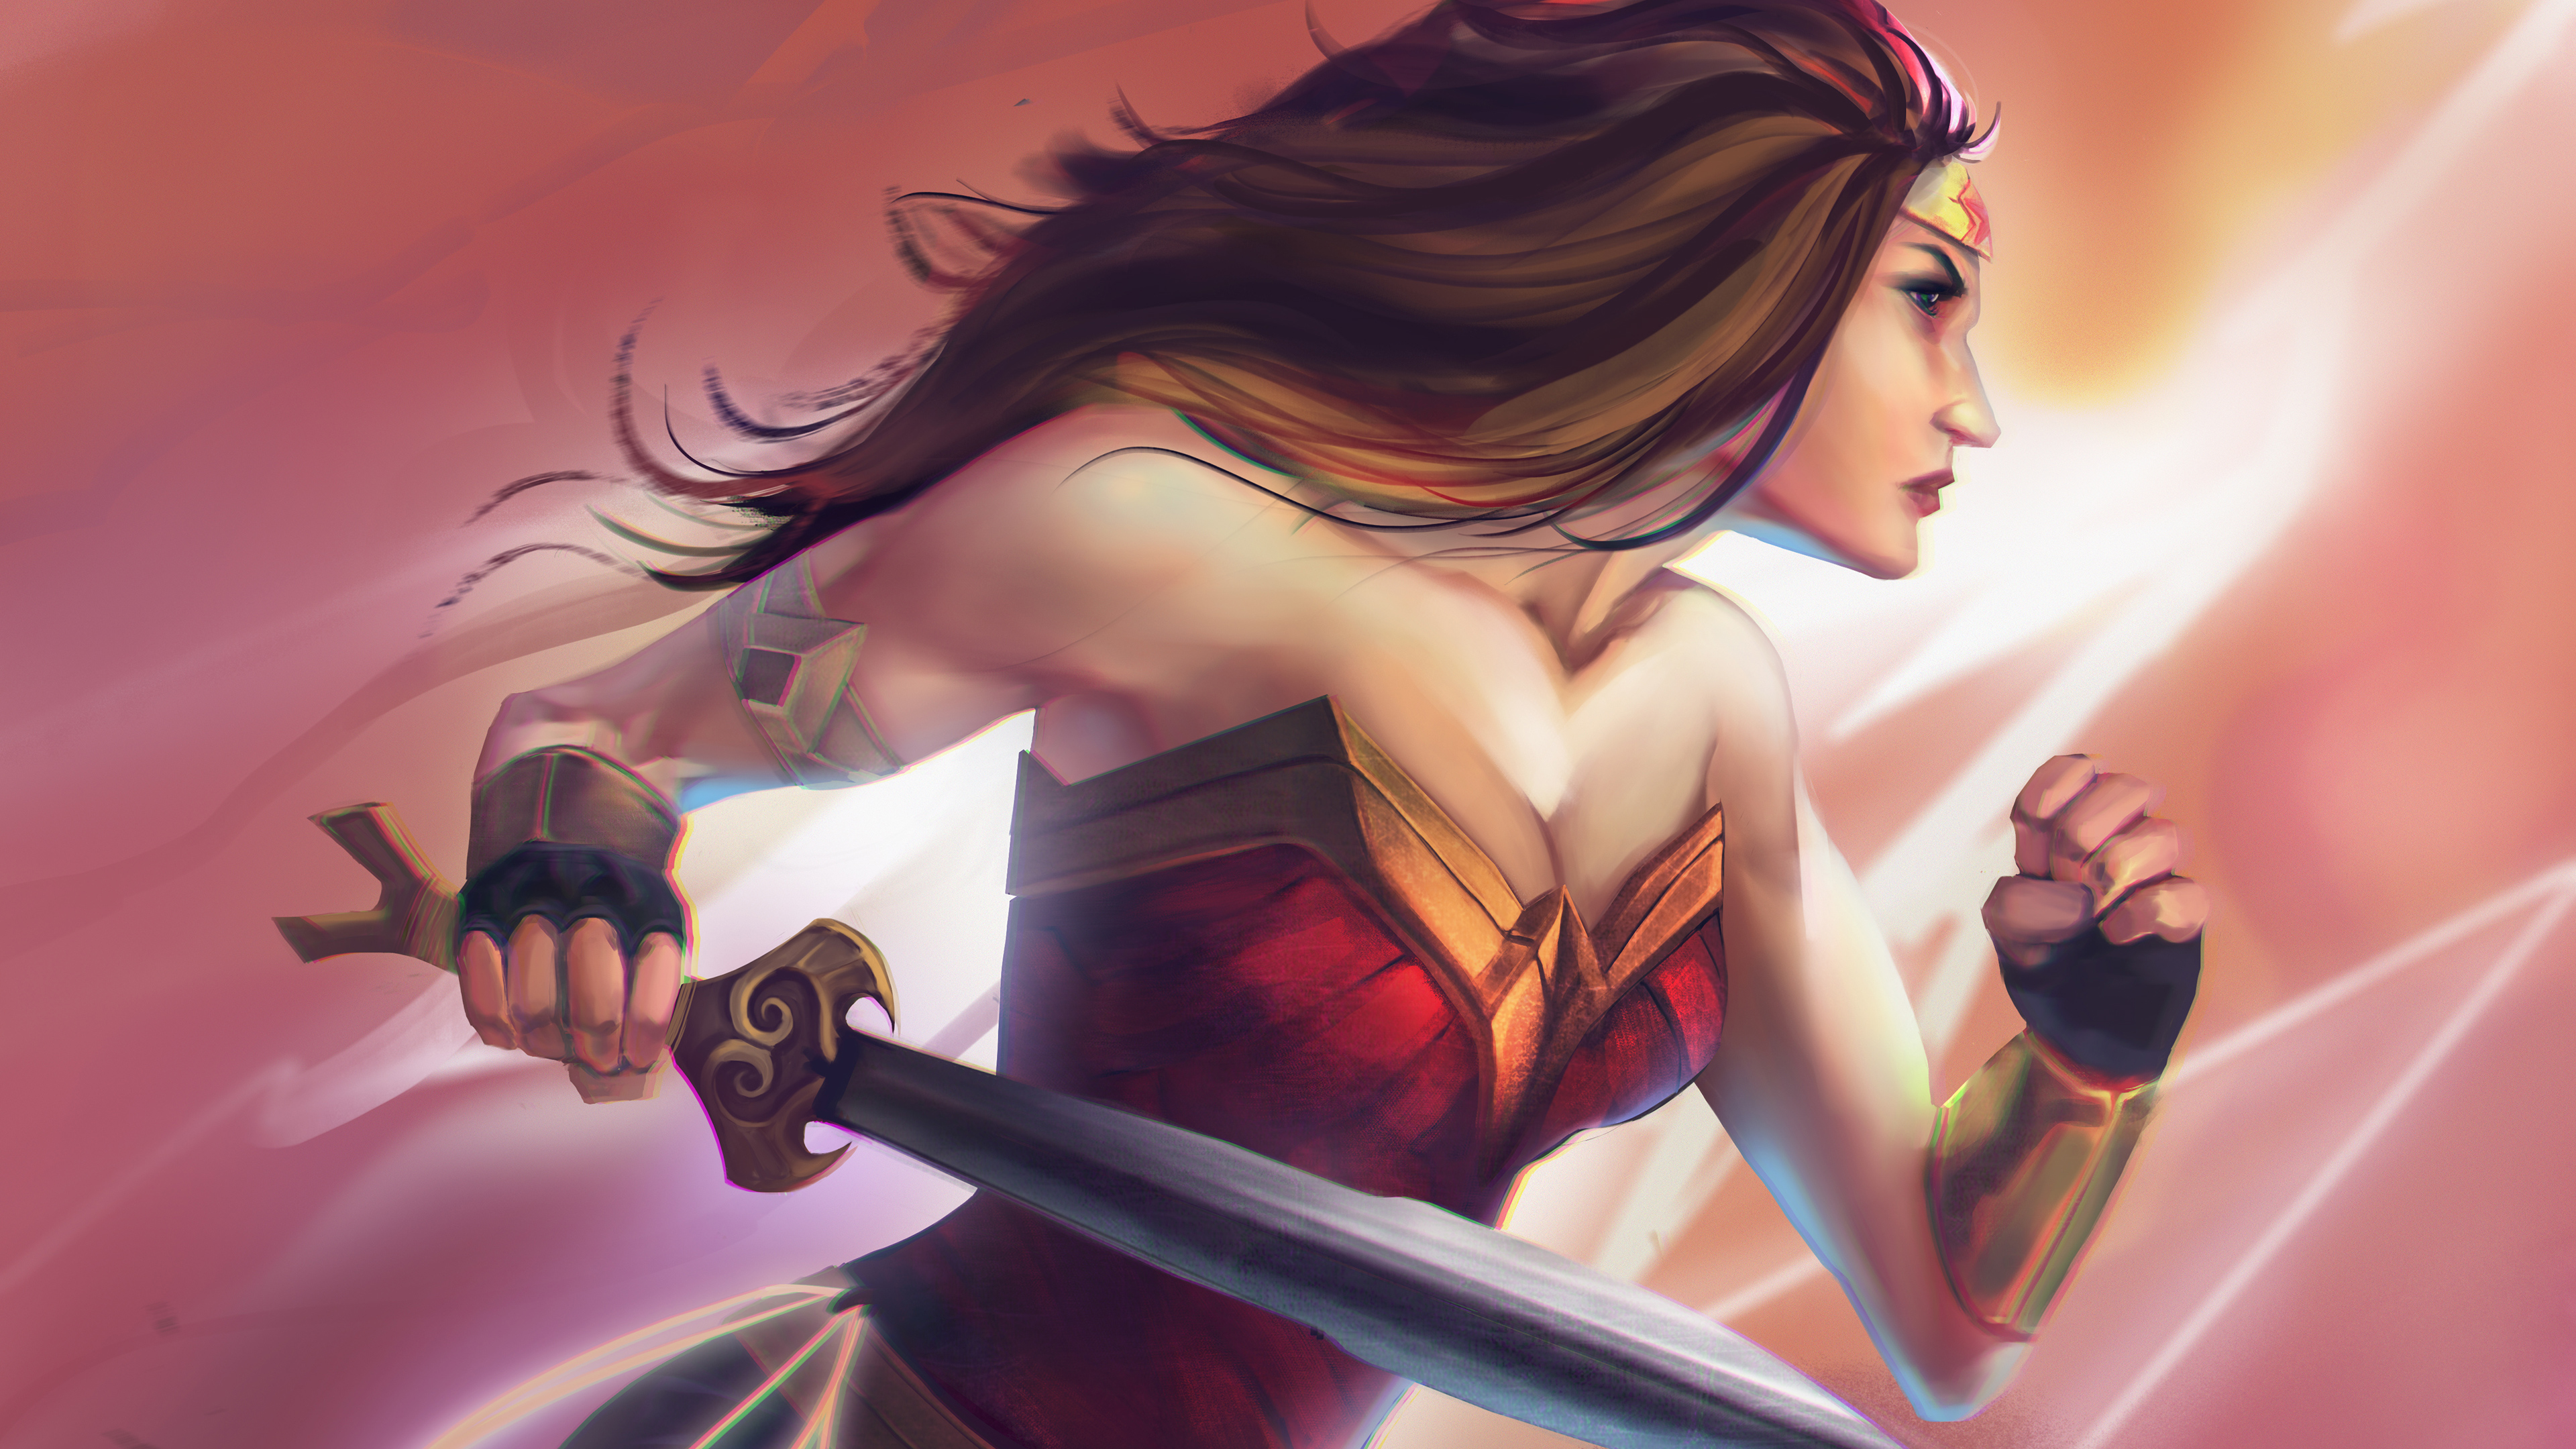 wonder woman paint art 4k 1544286880 - Wonder Woman Paint Art 4k - wonder woman wallpapers, superheroes wallpapers, hd-wallpapers, digital art wallpapers, behance wallpapers, artwork wallpapers, 4k-wallpapers